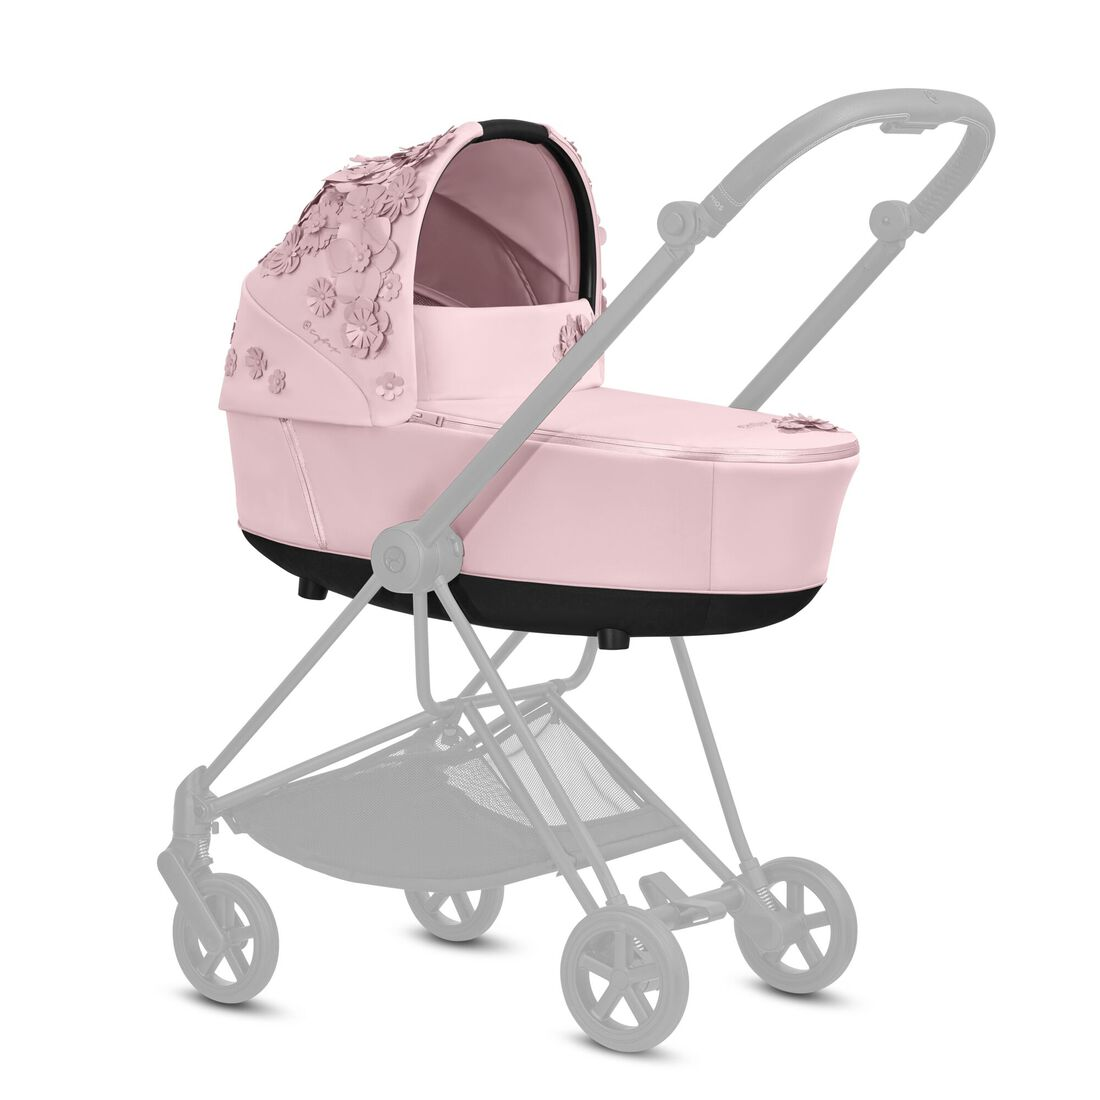 CYBEX Mios Lux Carry Cot - Pale Blush in Pale Blush large Bild 4